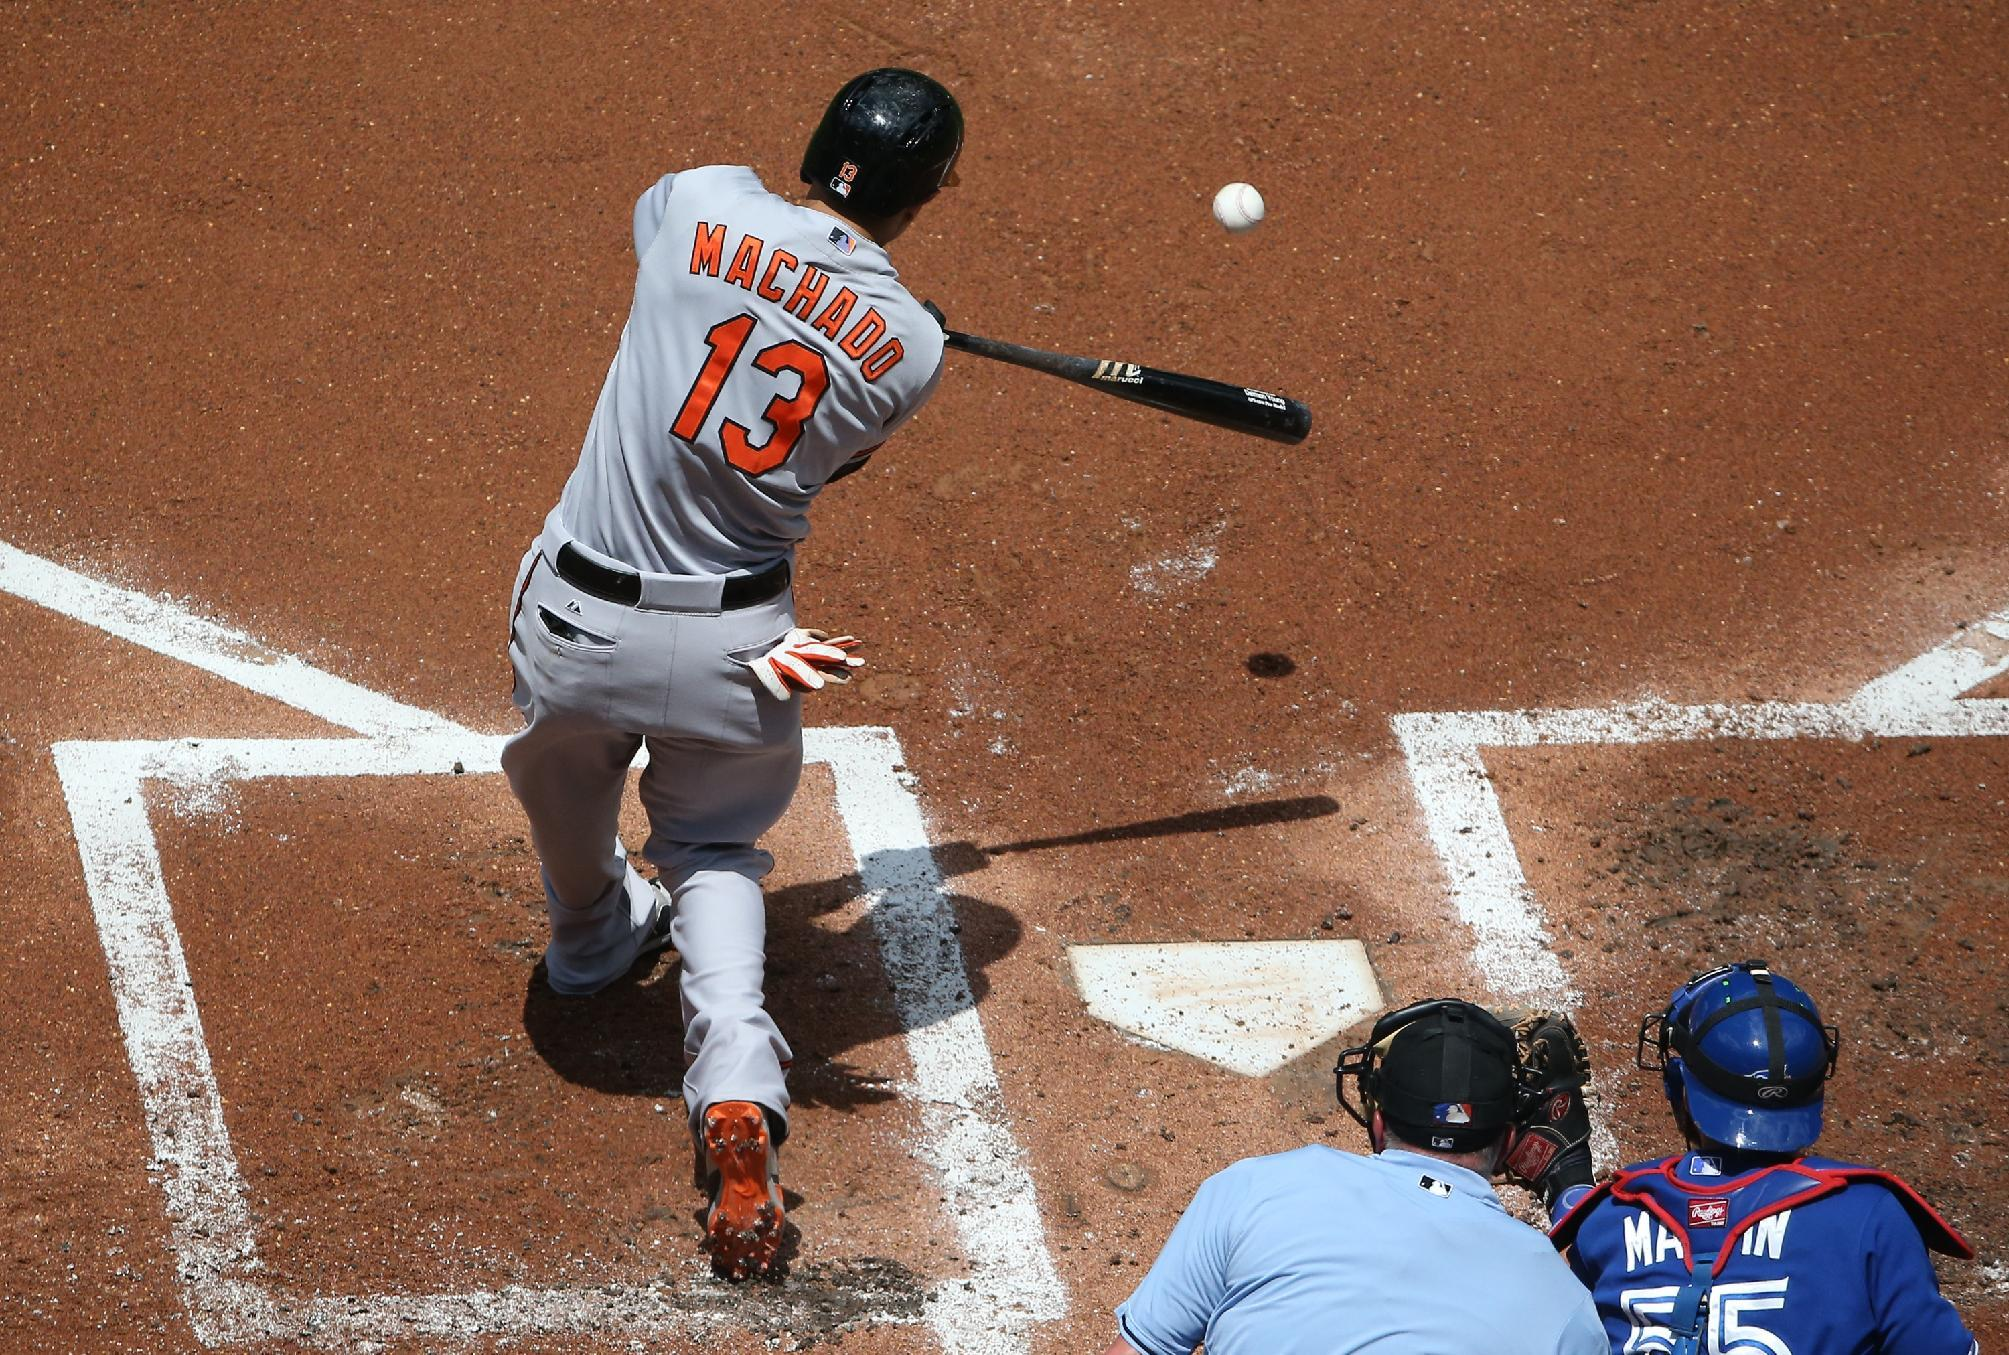 At age 22, Manny Machado is emerging as one of MLB's best at the hot corner. (Getty)